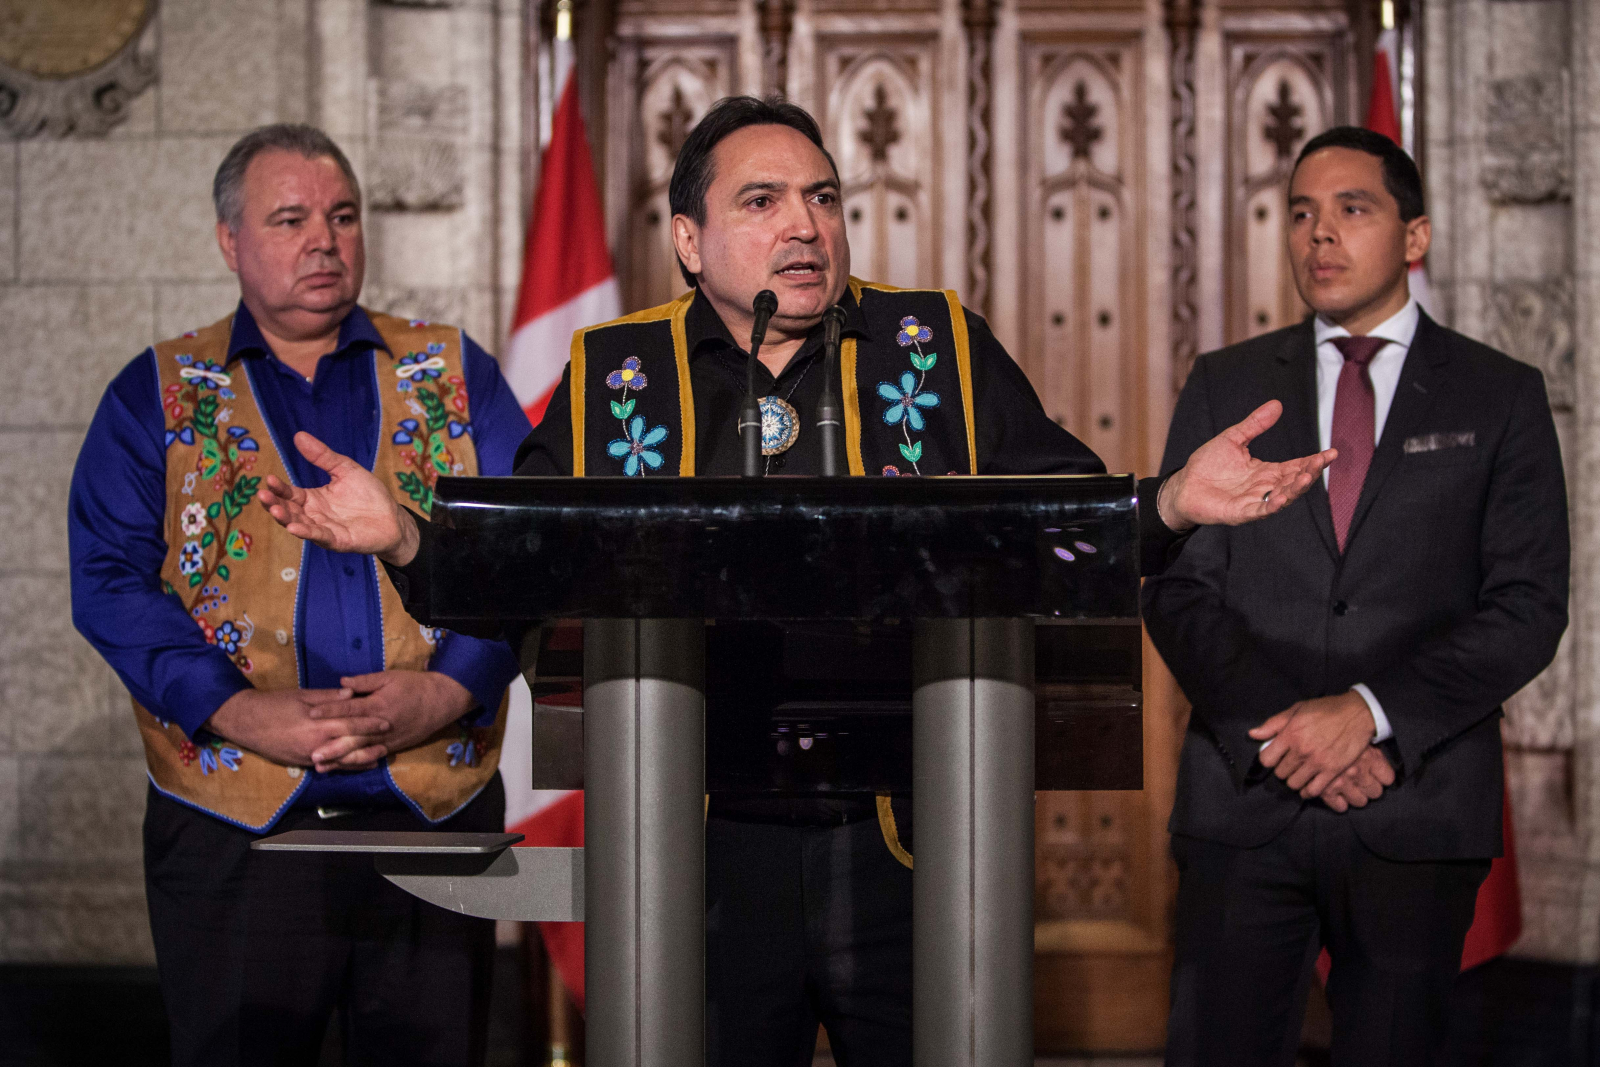 Perry Bellegarde, Natan Obed, David Chartrand, reconciliation